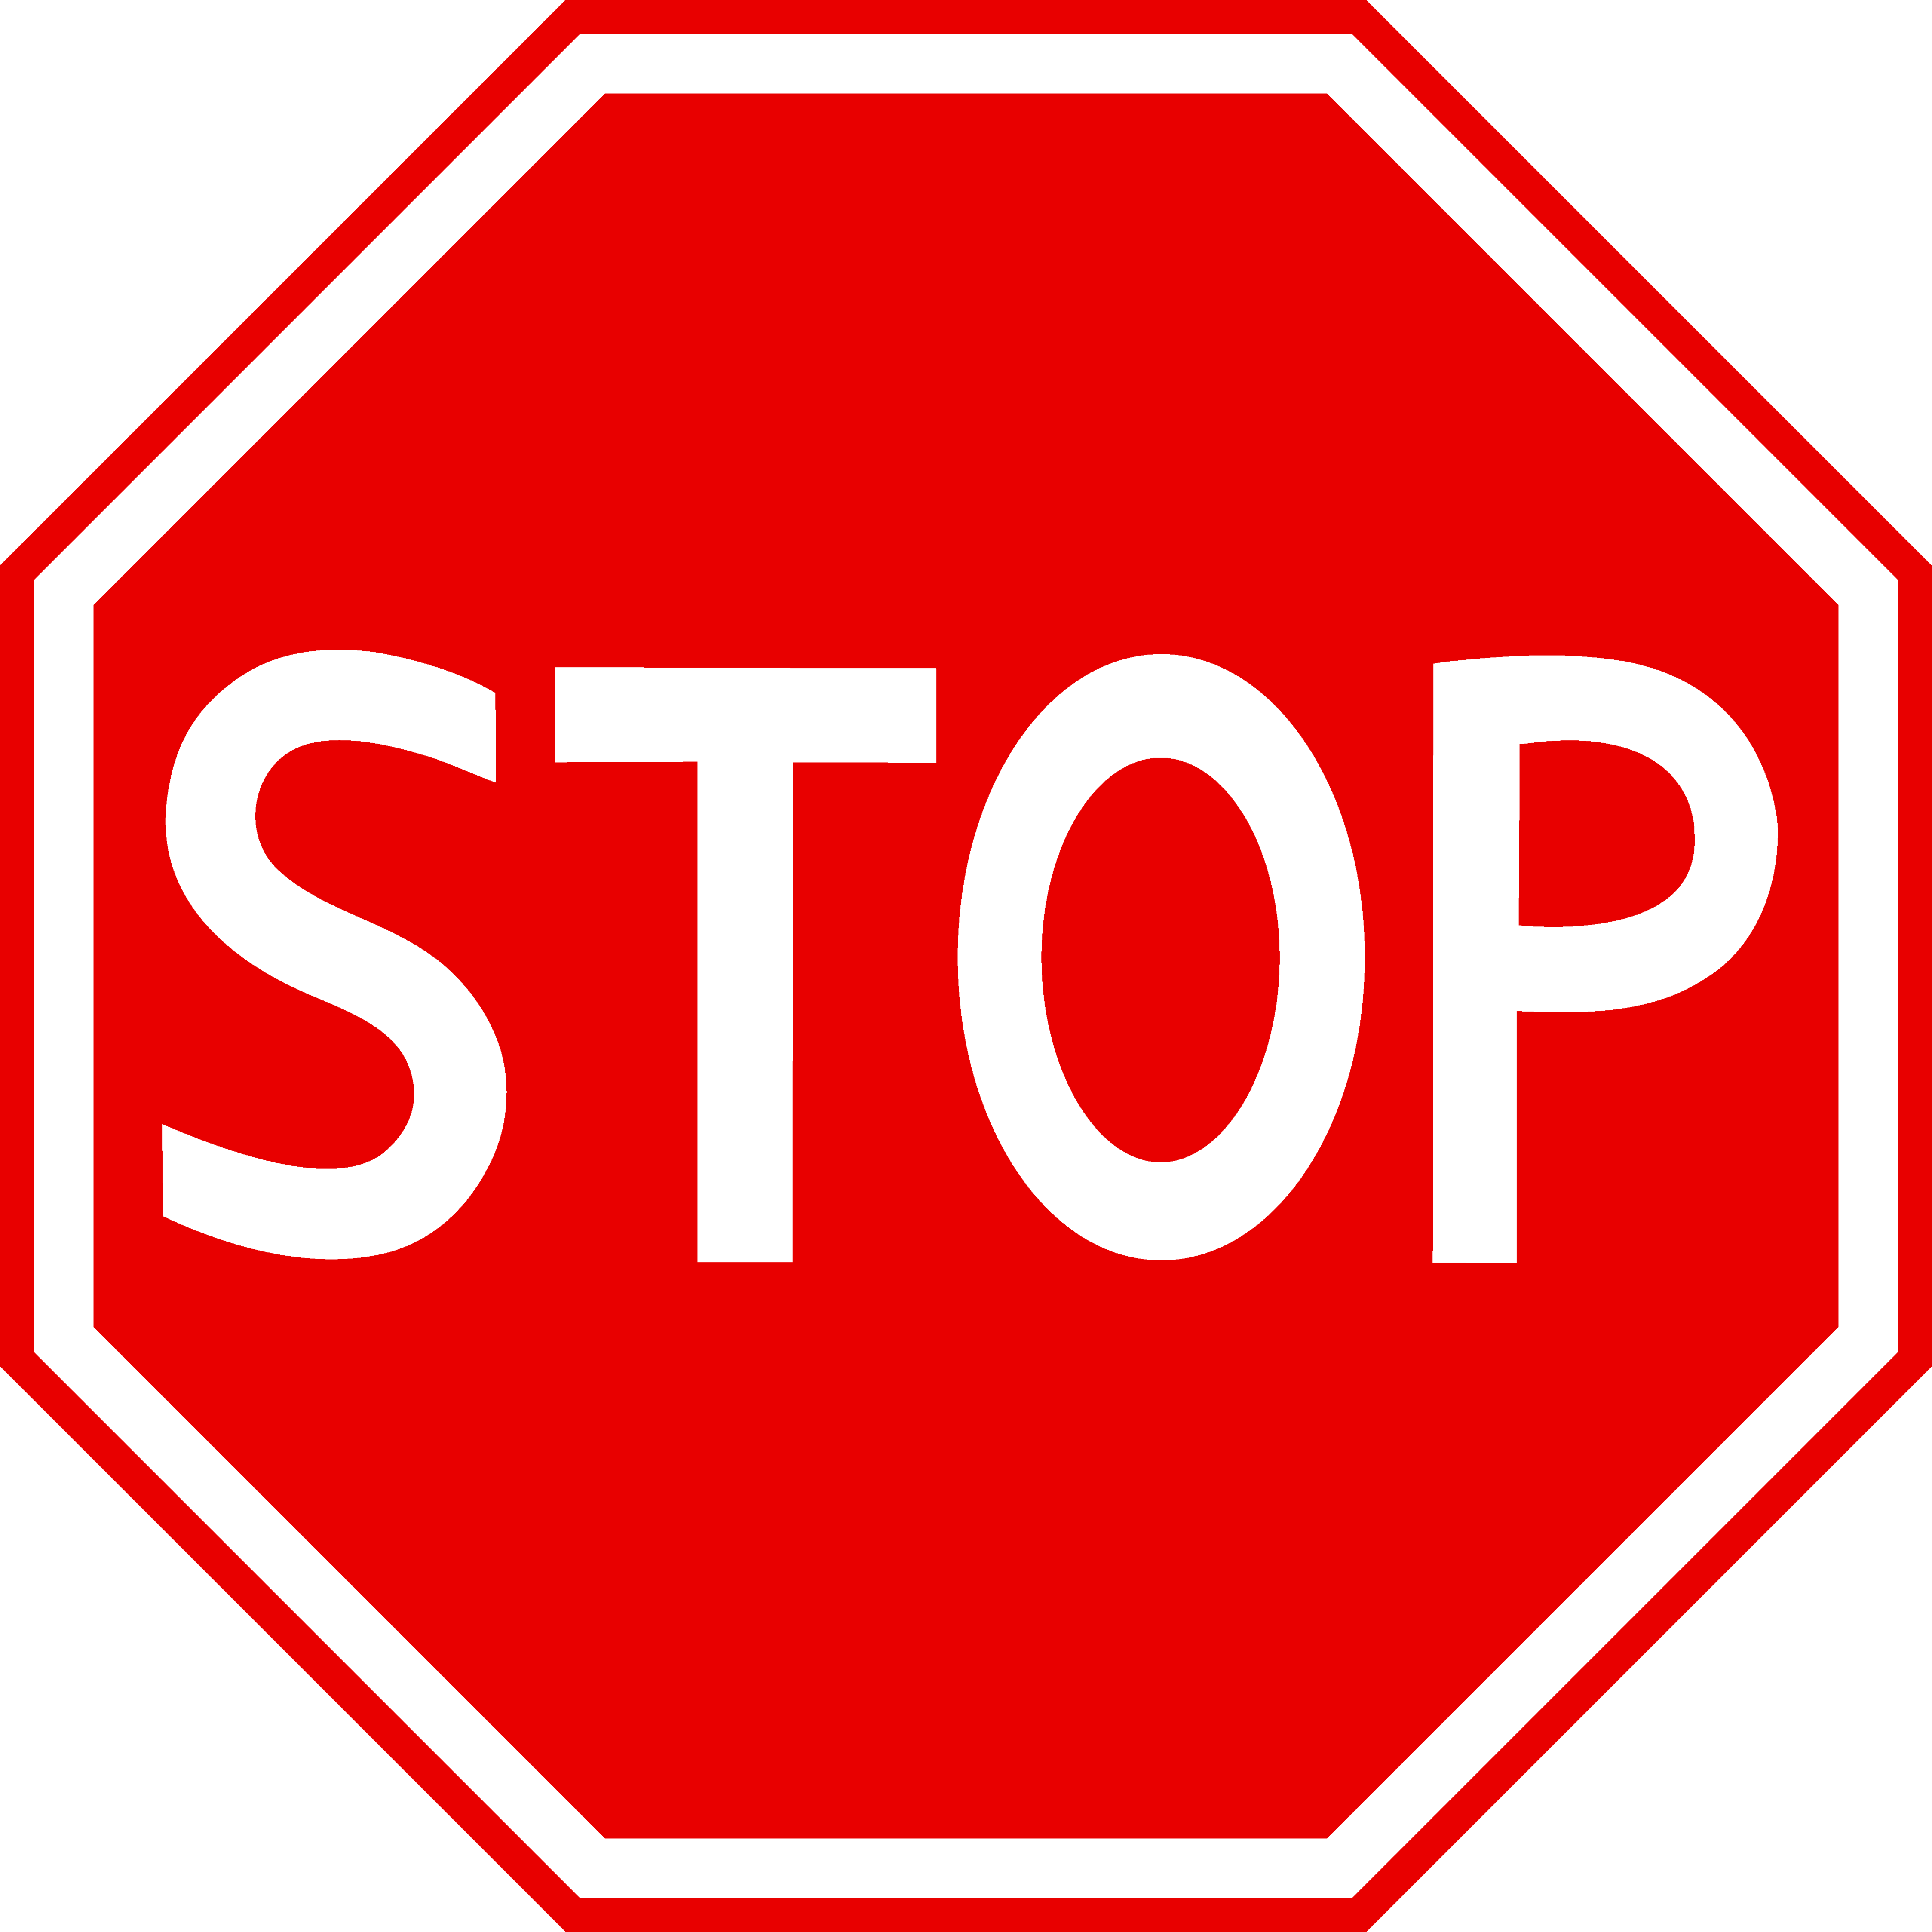 Toe stop clipart banner black and white library Big stop sign clipart best - Clipartable.com banner black and white library